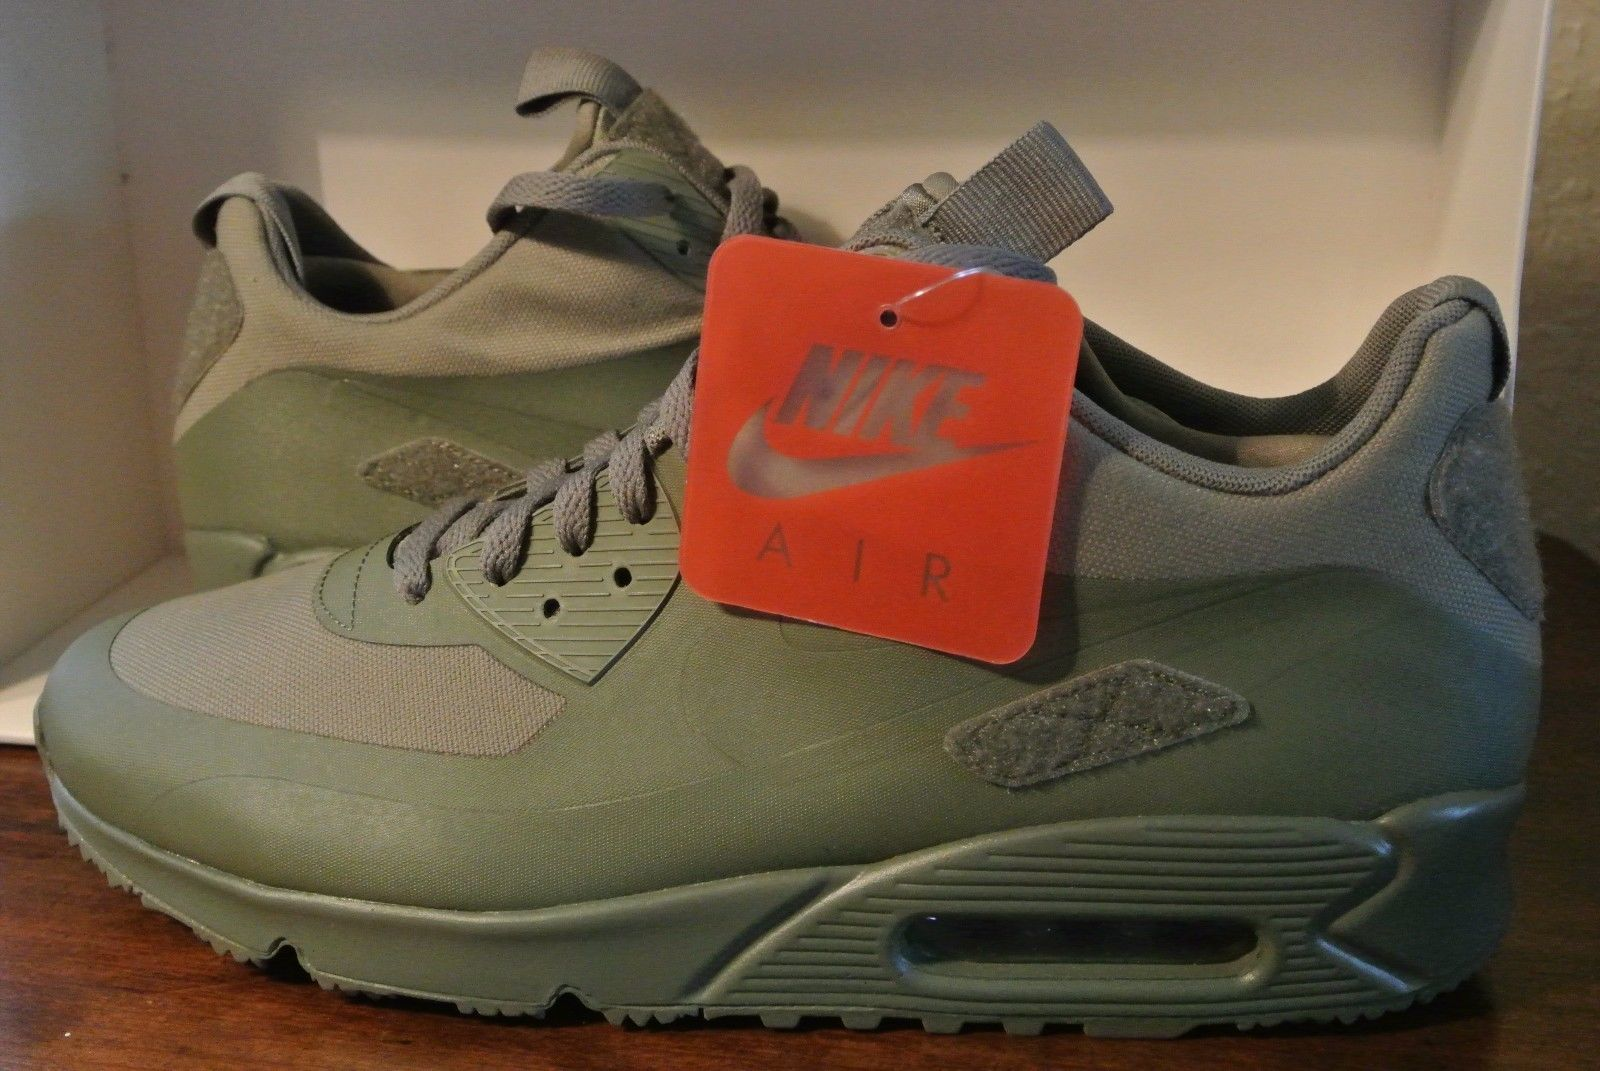 d330d0d248 NIKE AIR MAX 90 SNEAKERBOOT SP 'PATCHES' STEEL GREEN 704570 200 US Mens Sz  6.5